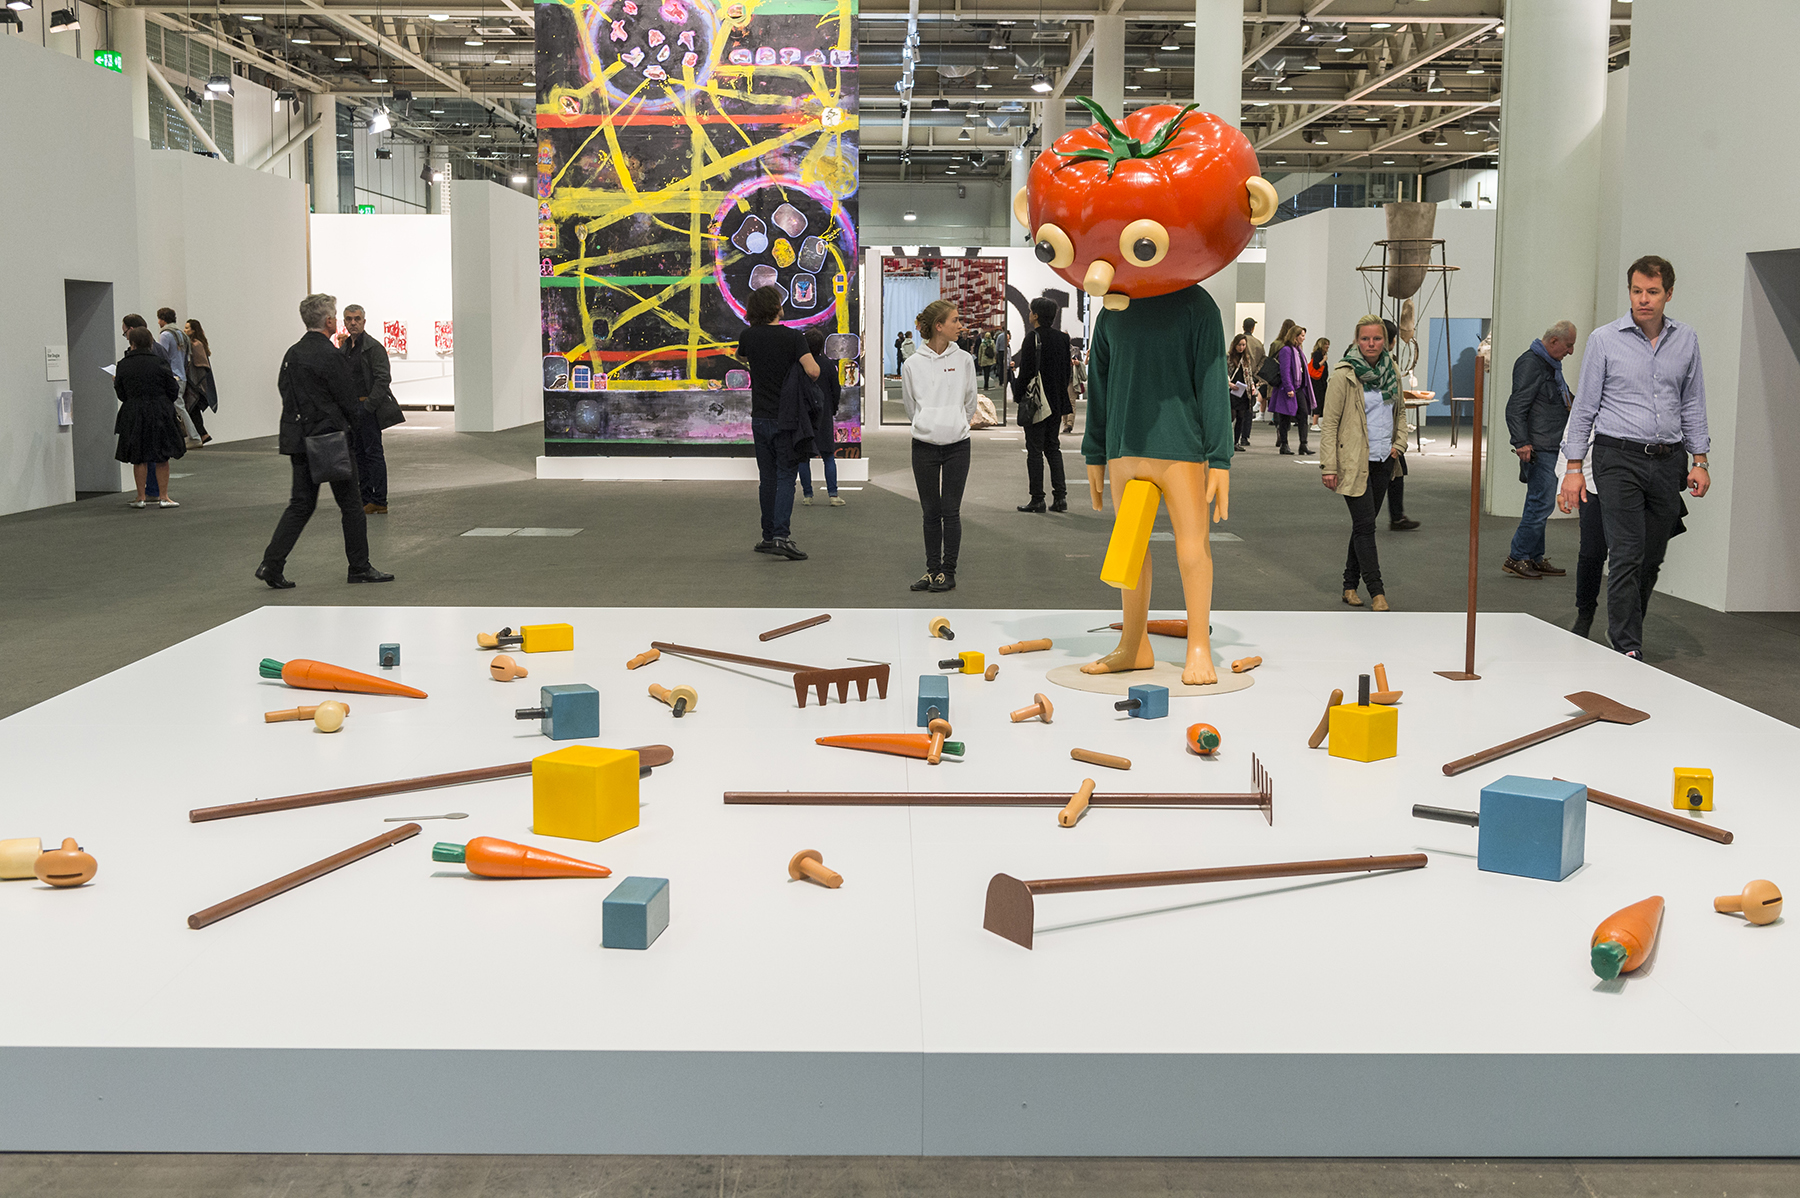 ABB16__Hauser_and_Wirth__Paul_McCarthy__PR__Unlimited___DSC0355.j_HiRes.jpg